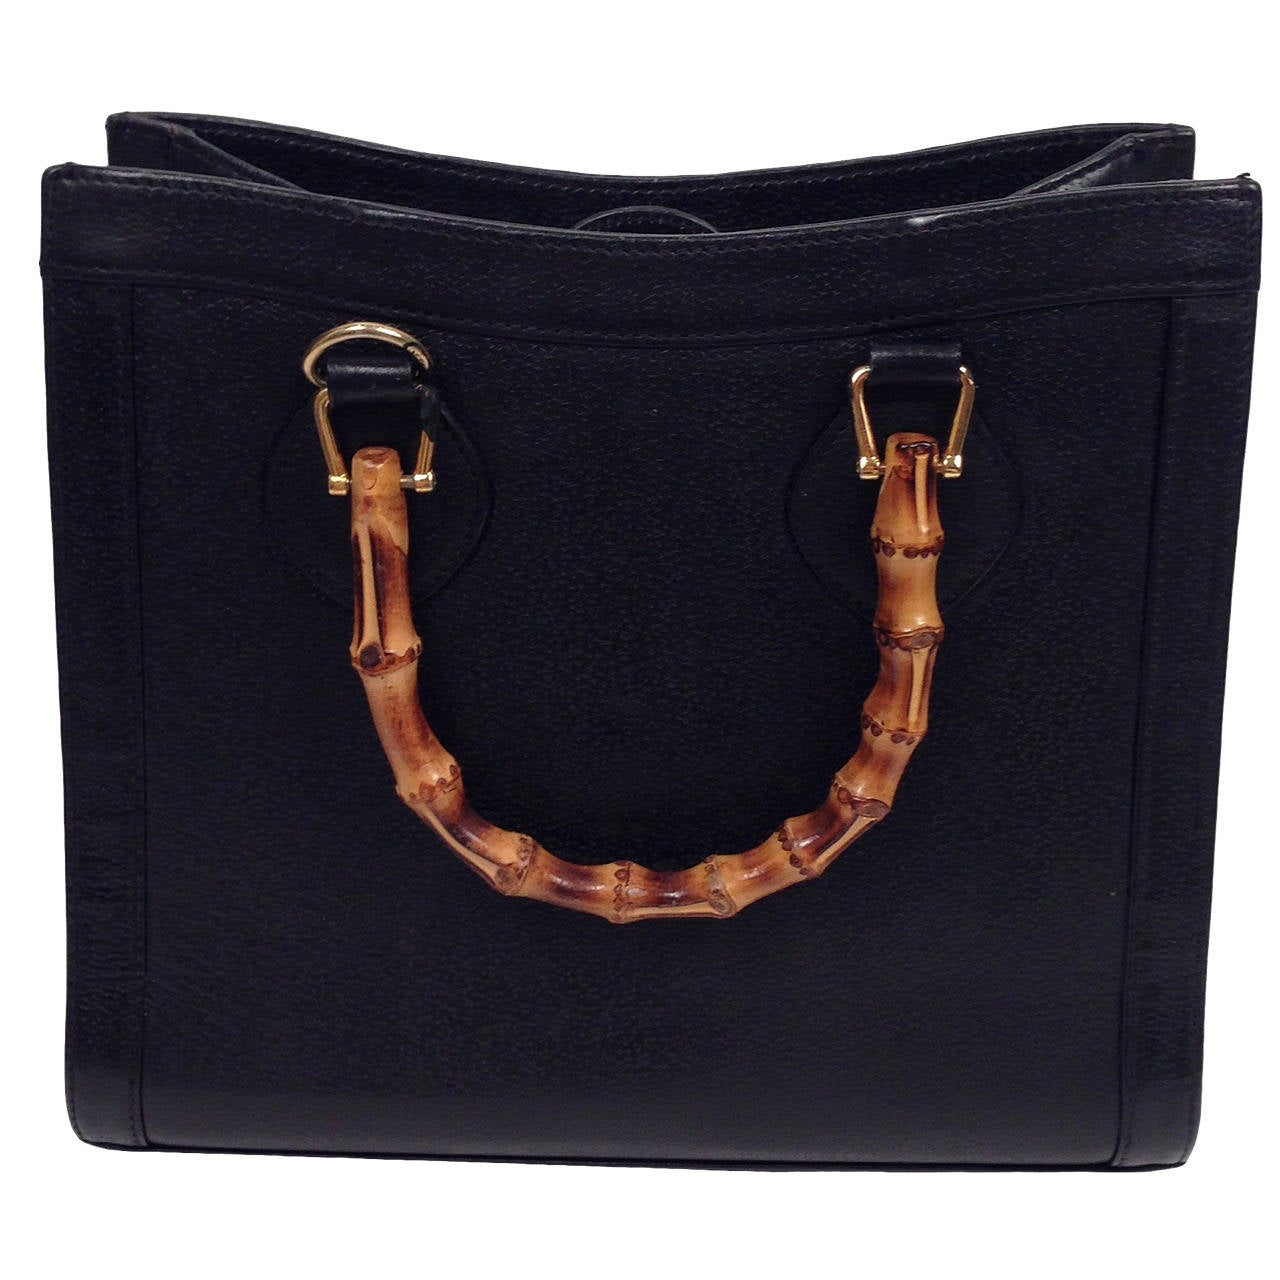 Vine Black Gucci Leather Tote With Bamboo Handles At 1stdibs